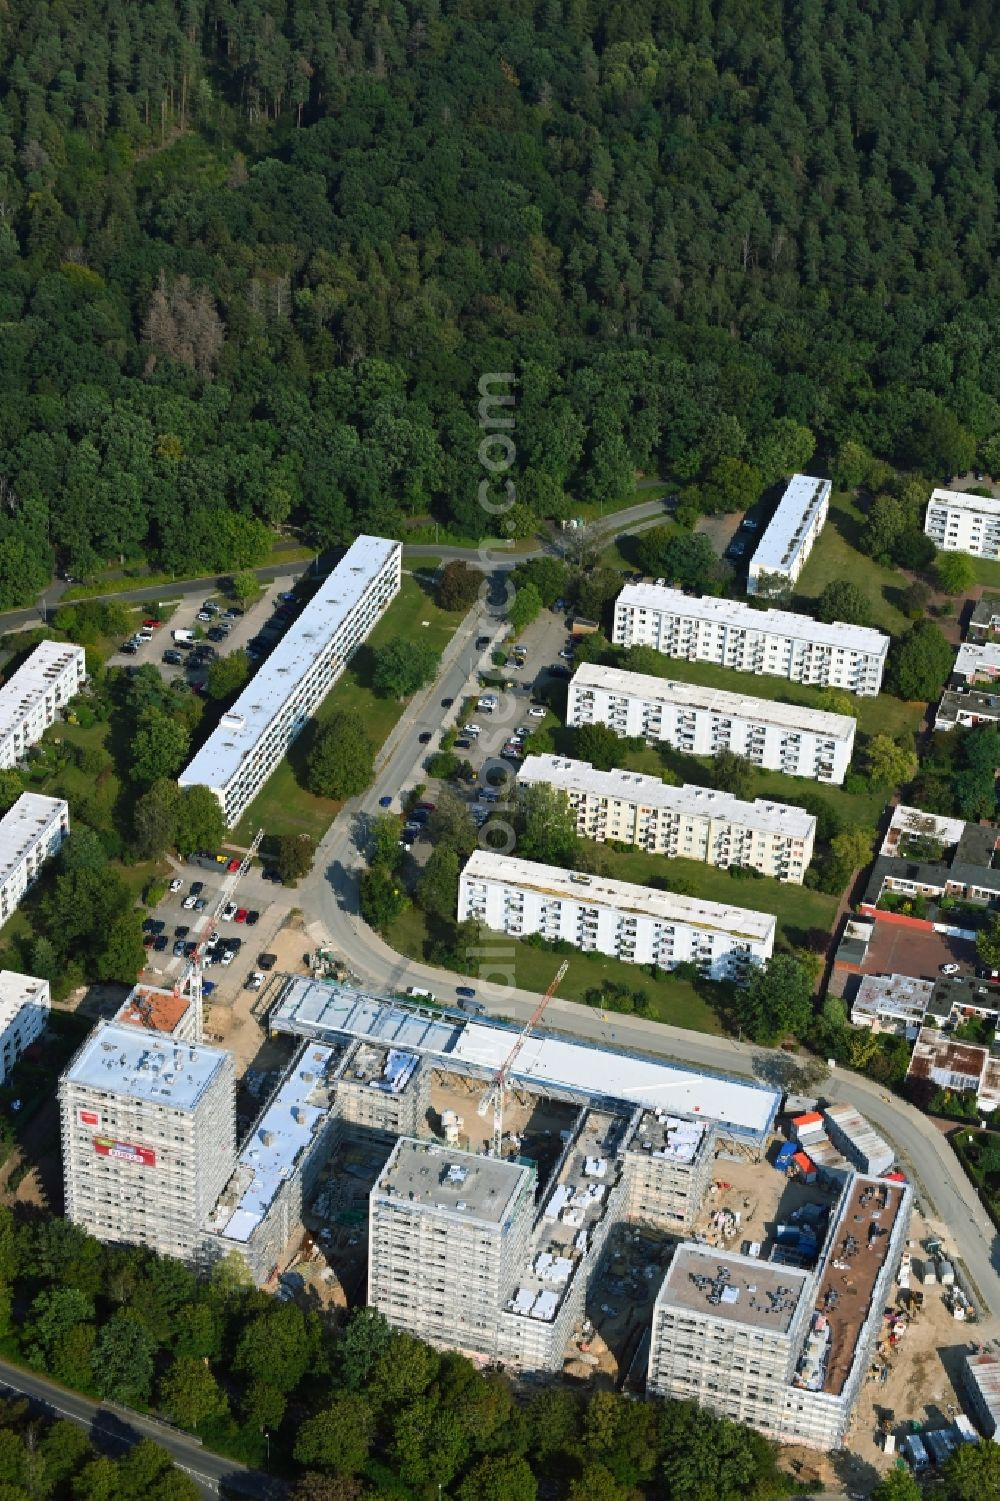 Aerial image Wolfsburg - Construction site for new high-rise building complex Wohnanlage Kurt 2.0 on Kurt - Schumacher - Ring in the district Detmerode in Wolfsburg in the state Lower Saxony, Germany